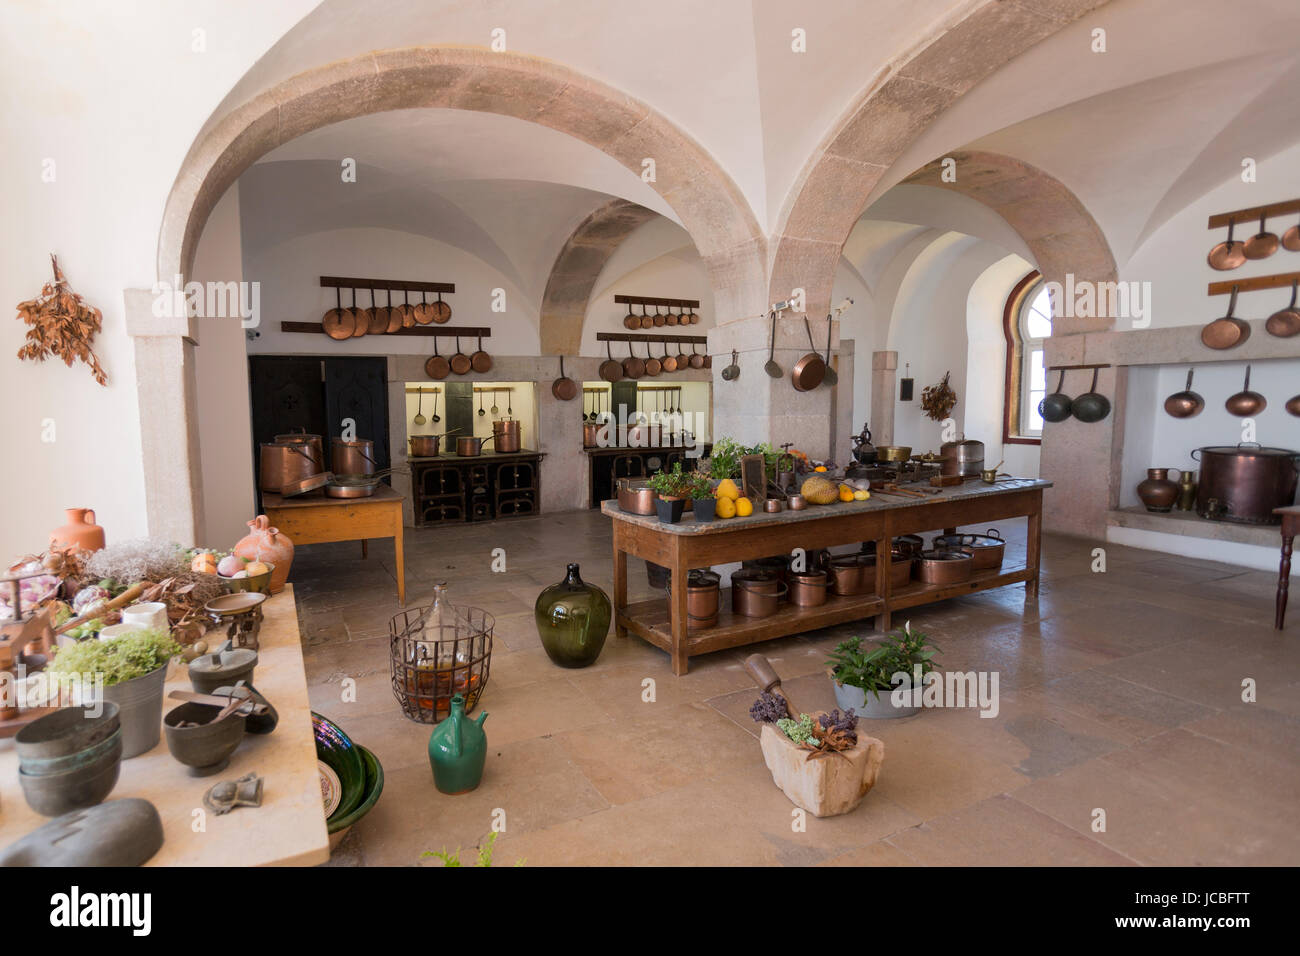 Kitchen at the Palace of Pena, Sintra, Portugal - Stock Image